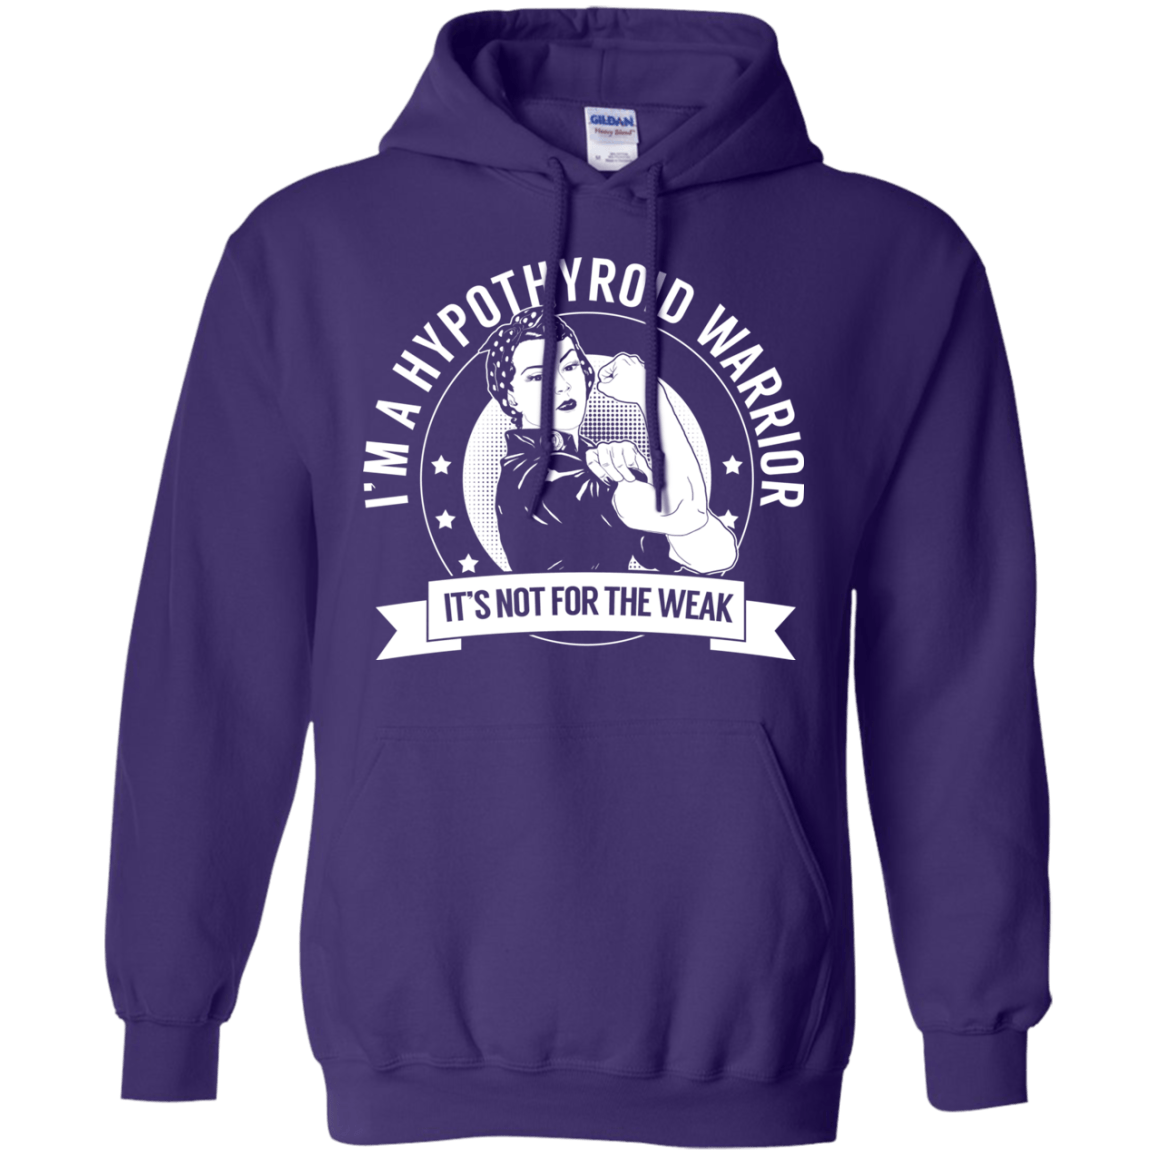 Sweatshirts - Hypothyroid Warrior Not For The Weak Pullover Hoodie 8 Oz.